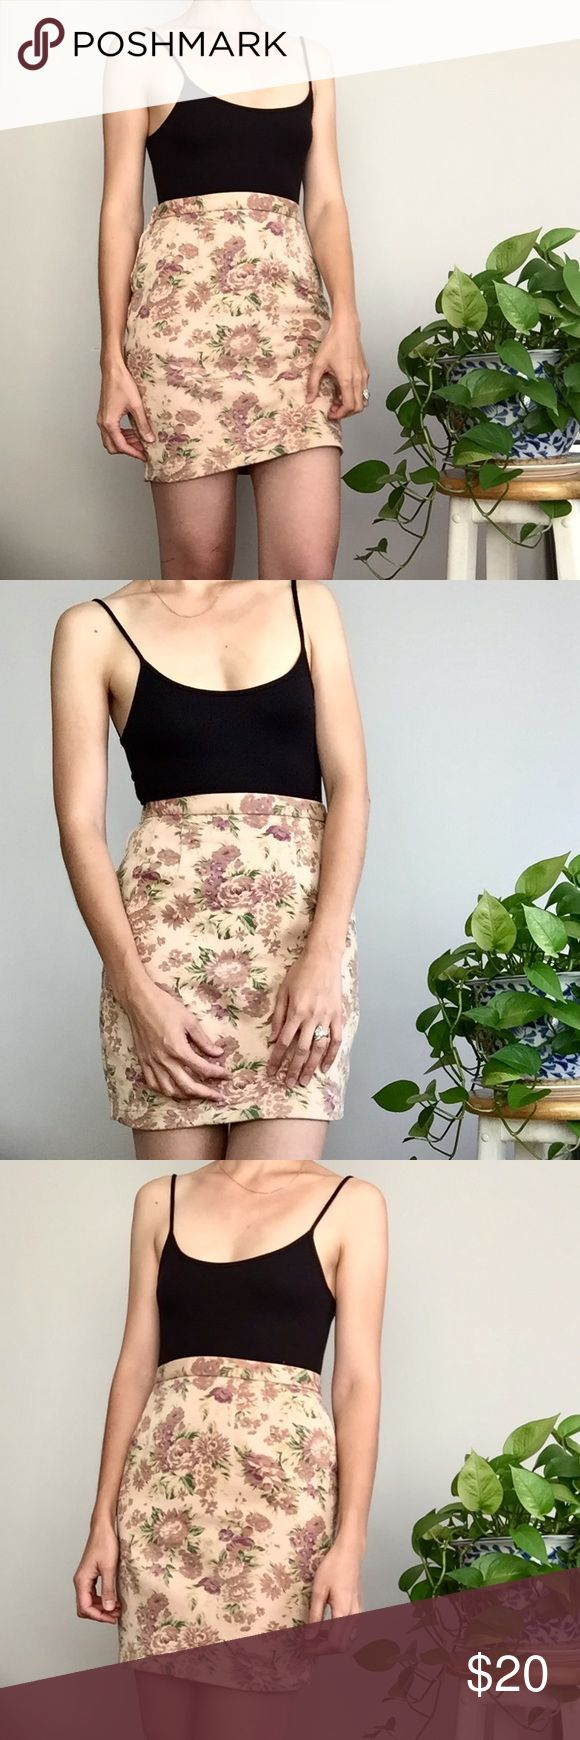 """VINTAGE • Floral Mini Skirt • I no longer lower my prices but I am open to offers! Send me an offer (or click """"bundle"""" and I'll send you my lowest) •  rose print vintage skirt • high waisted • ideal for approx. 26"""" waist • stretch knit fabric Vintage Skirts Mini"""